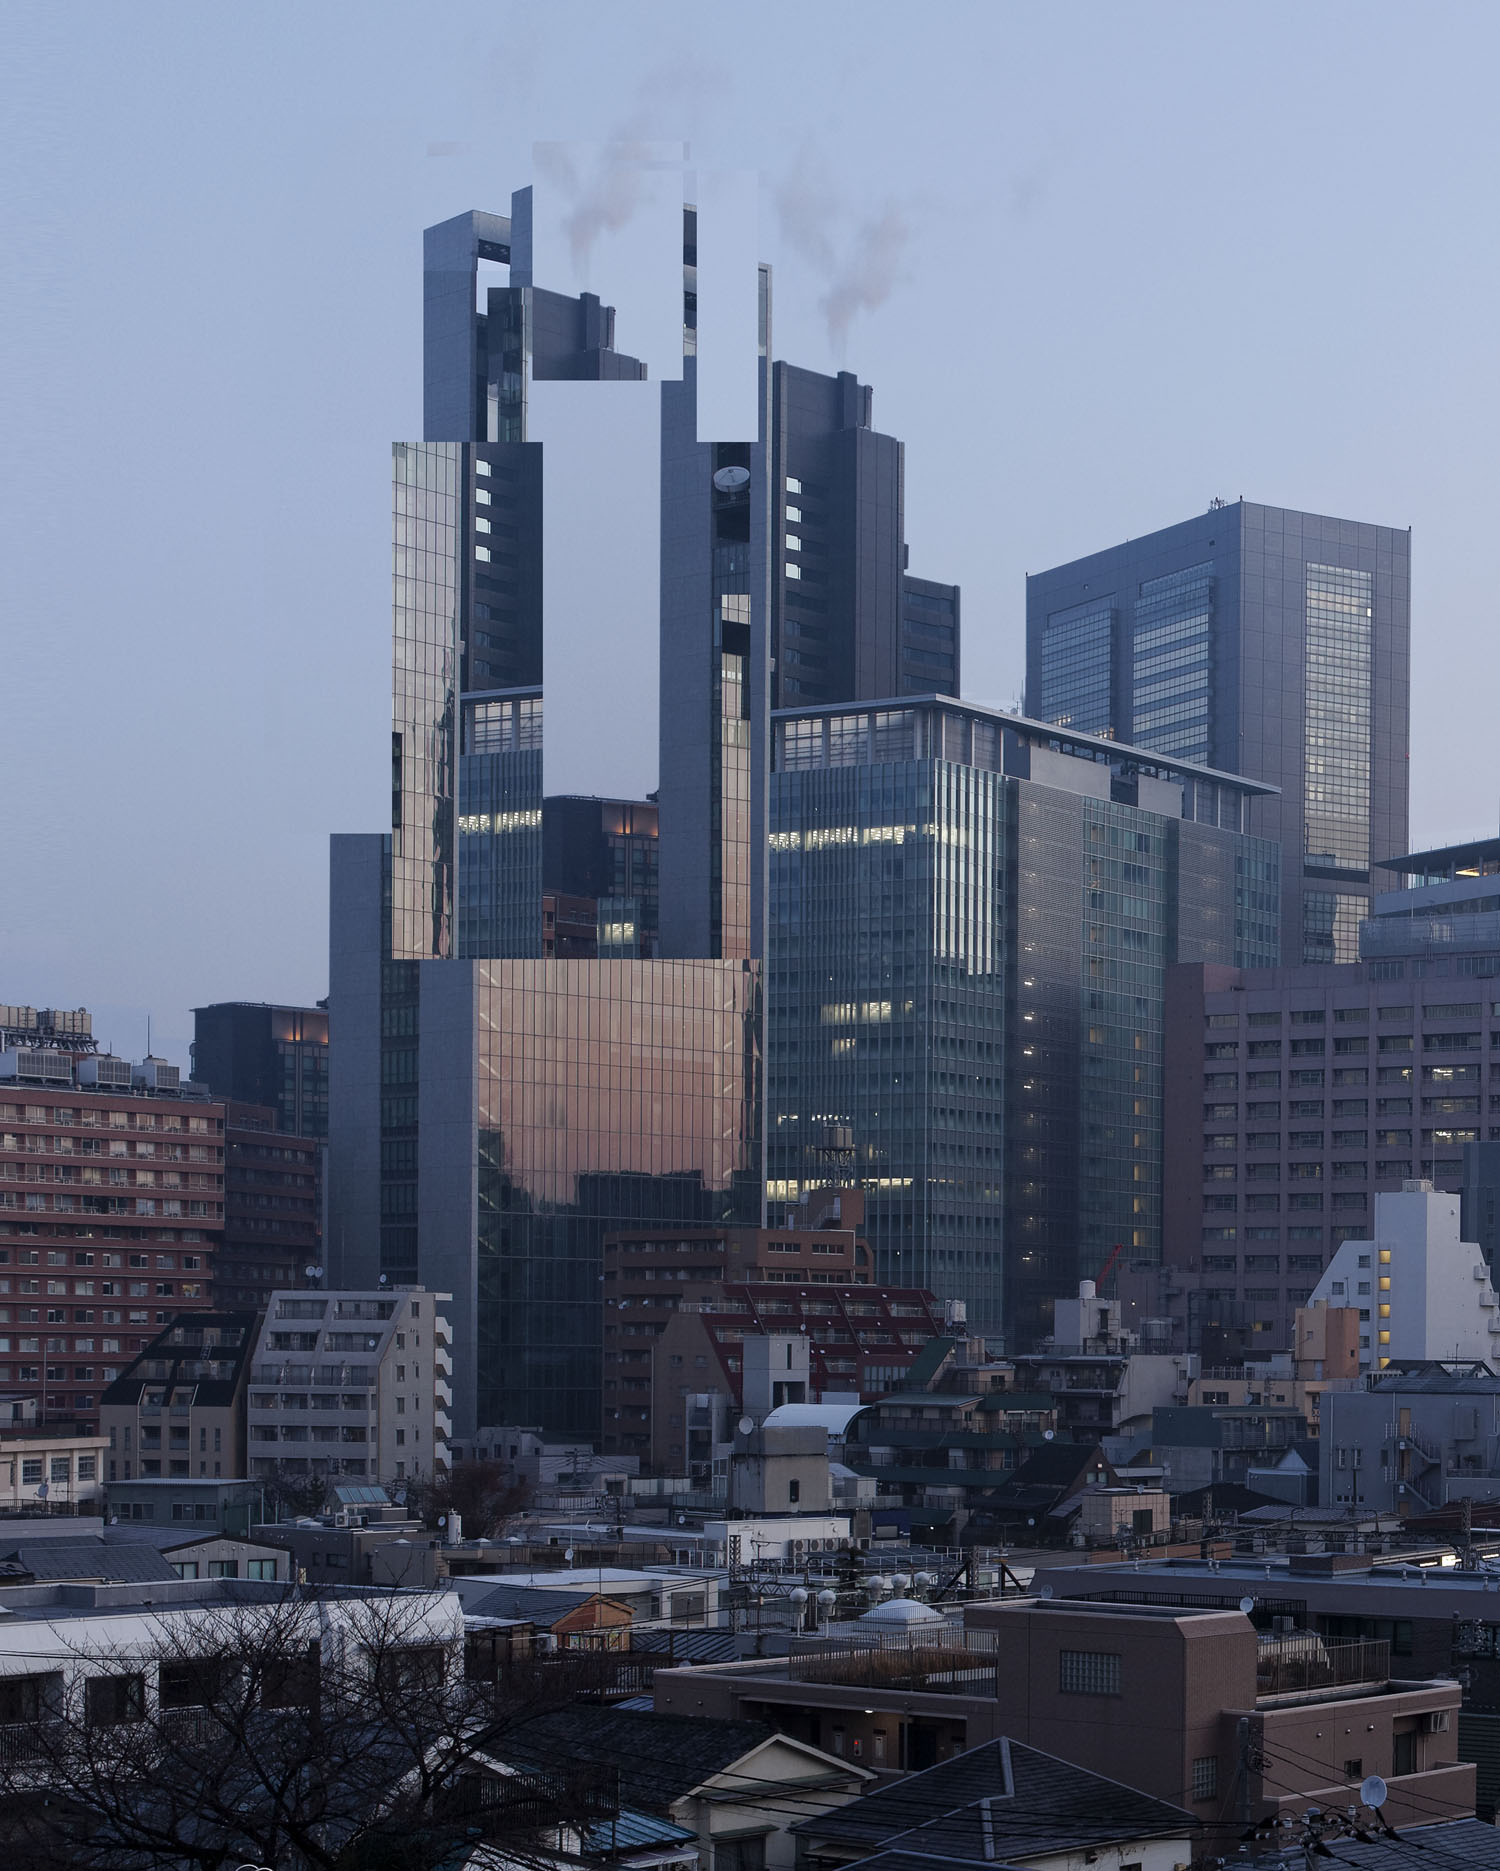 Anarchitecture in Tokyo (from WYSI*not*WYG project by Olivier Ratsi)